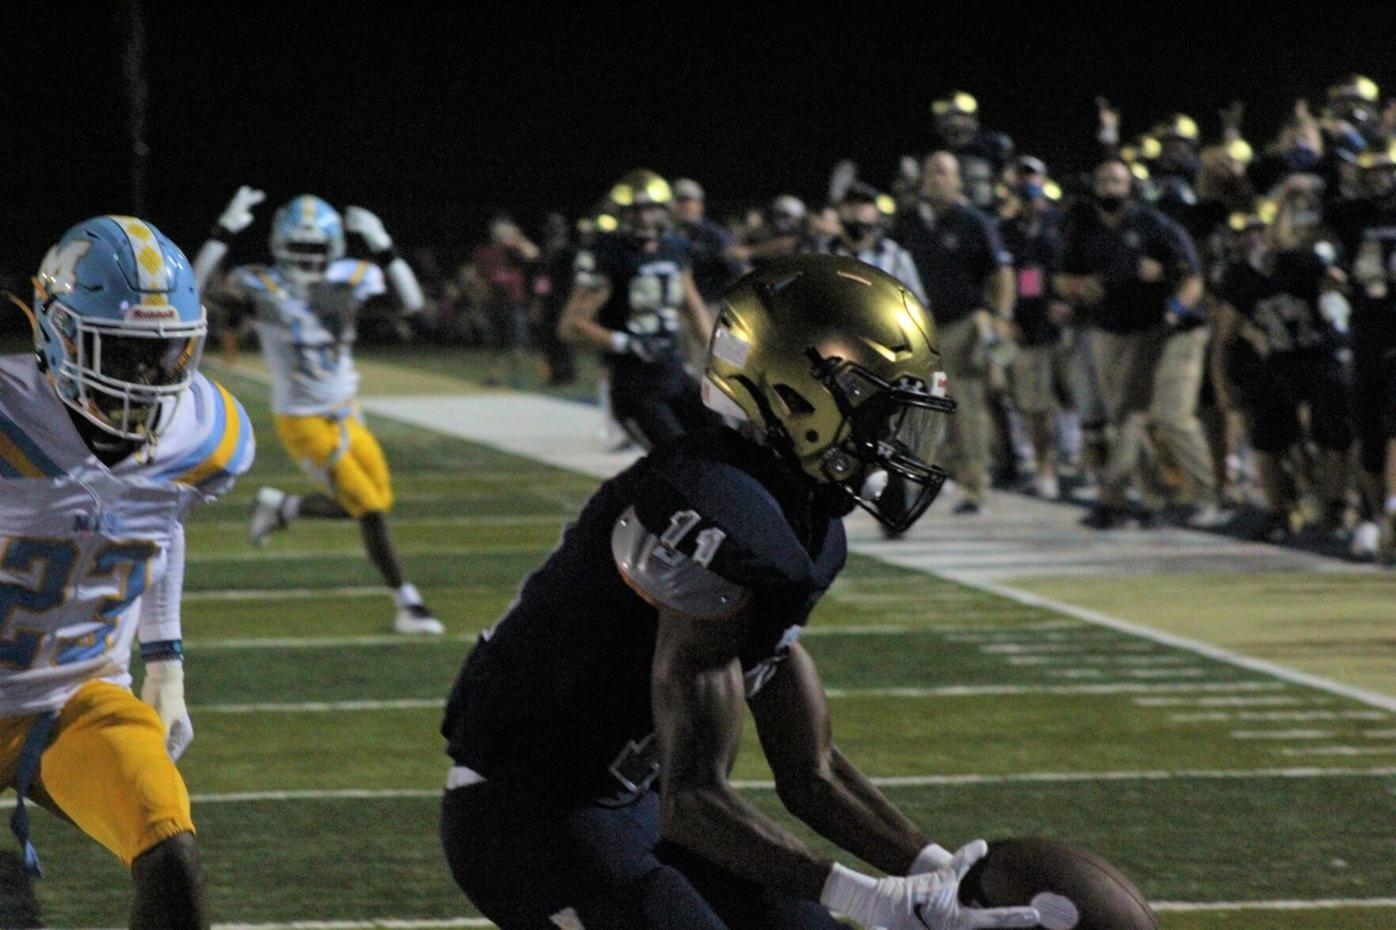 West Forsyth Football rings in season of uncertainty with dominant win over Mays